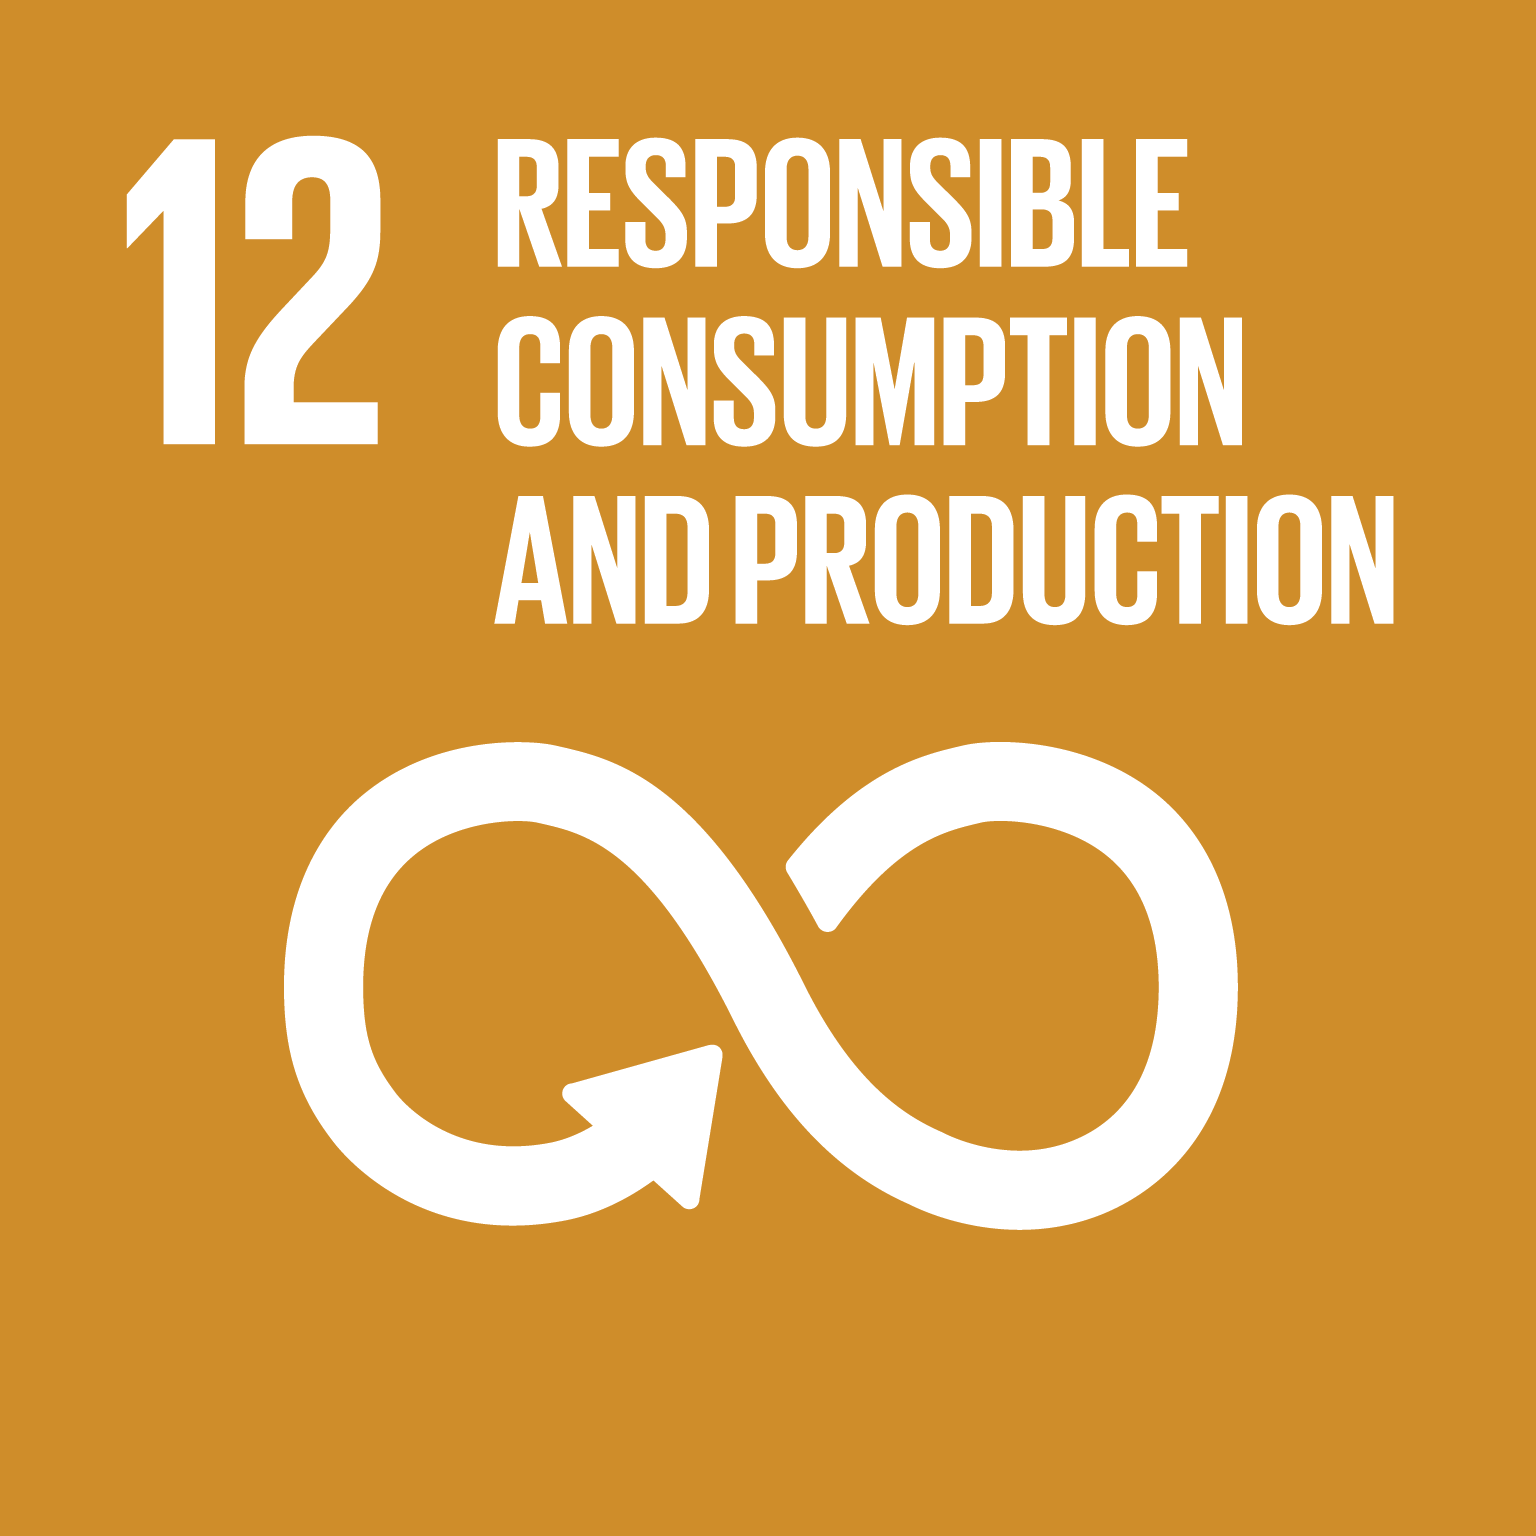 Ensure sustainable consumption and production patterns.